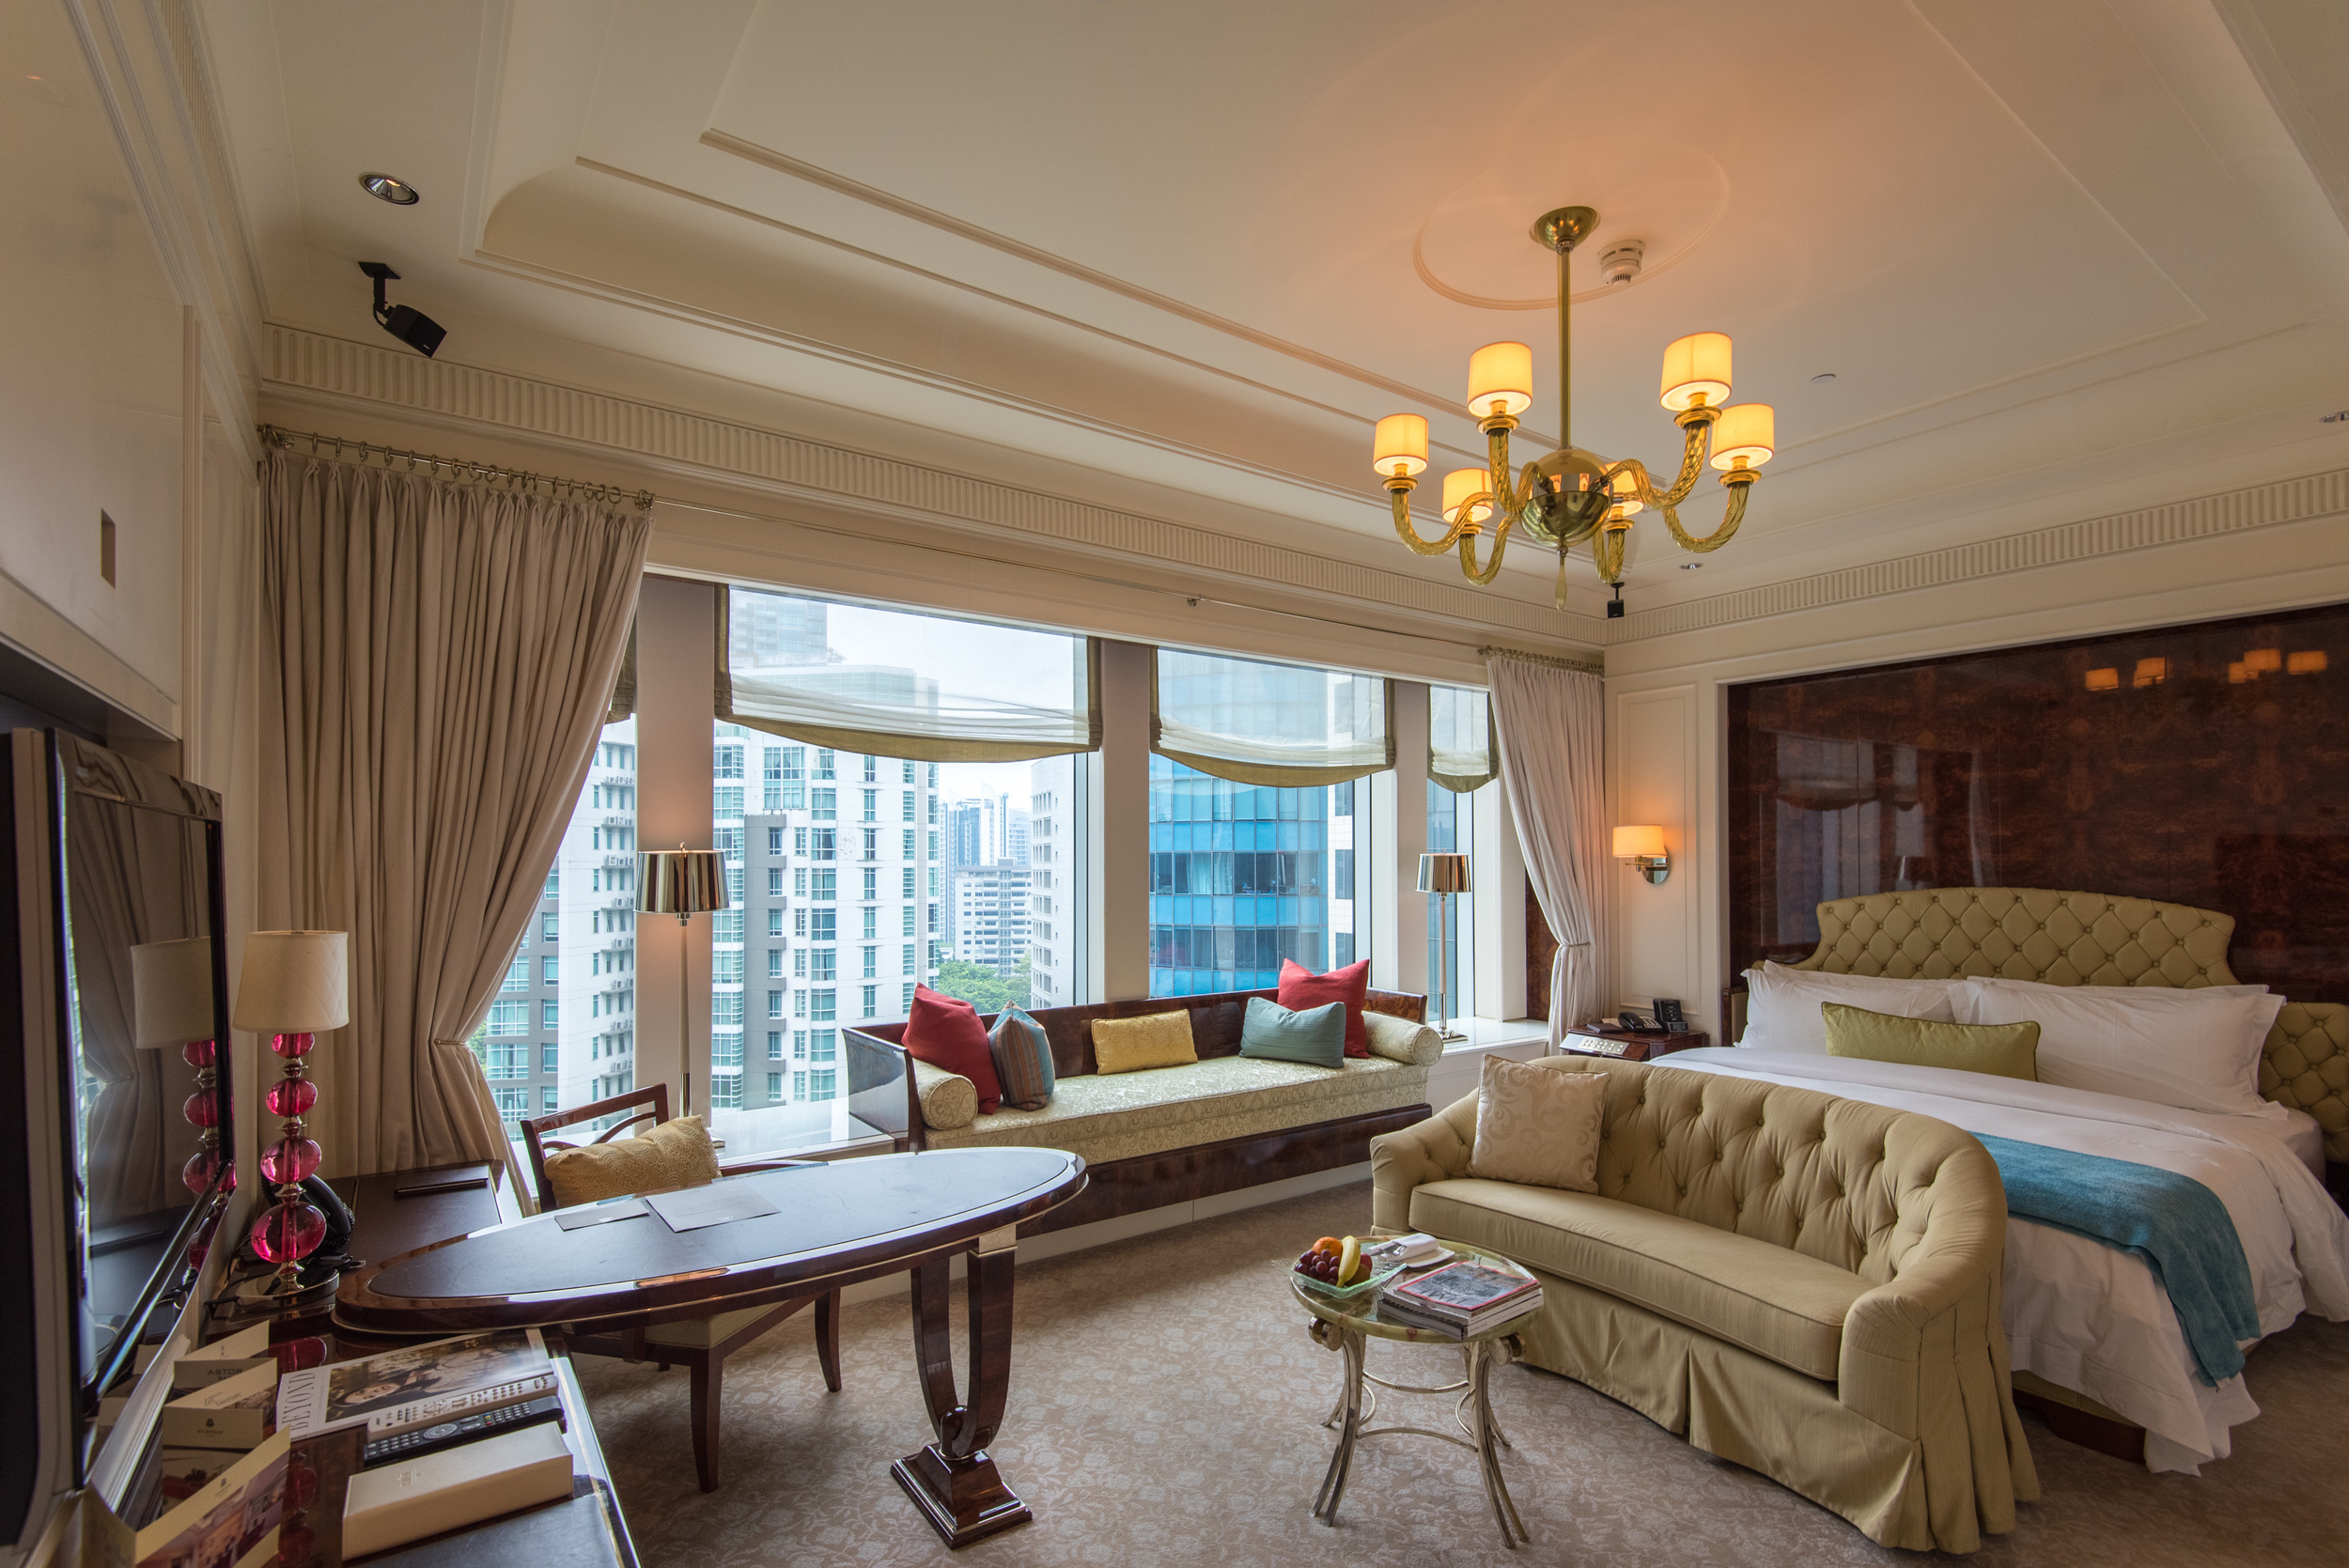 Bedroom  Executive Deluxe Room - The St. Regis Singapore